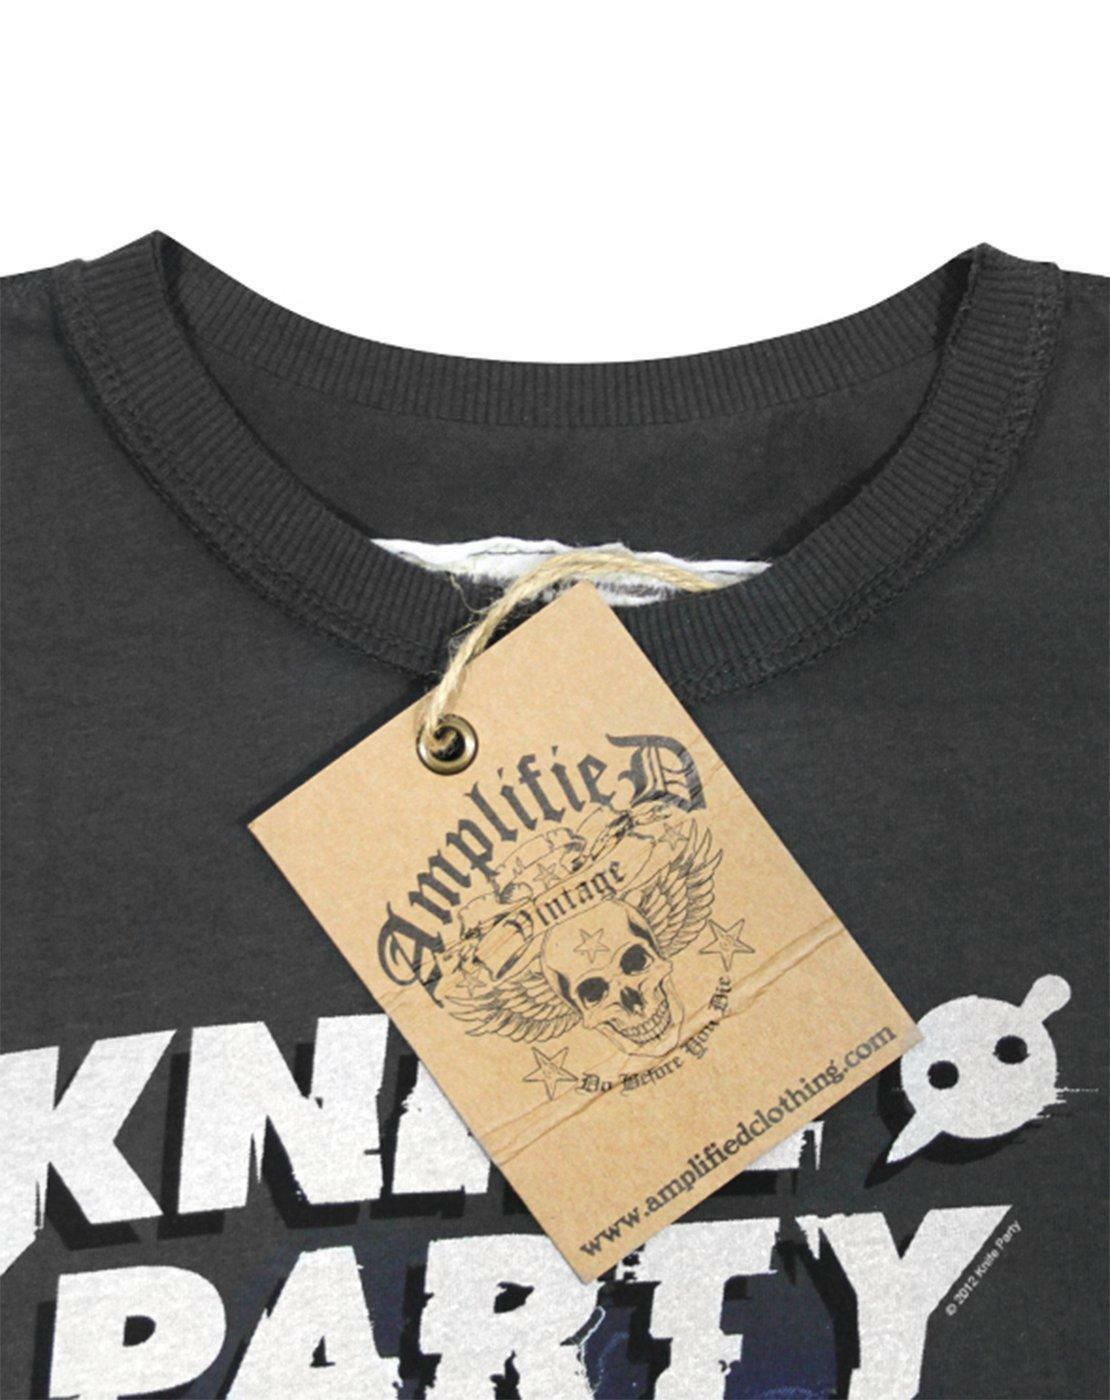 Amplified-Knife-Party-Women-039-s-T-Shirt thumbnail 8